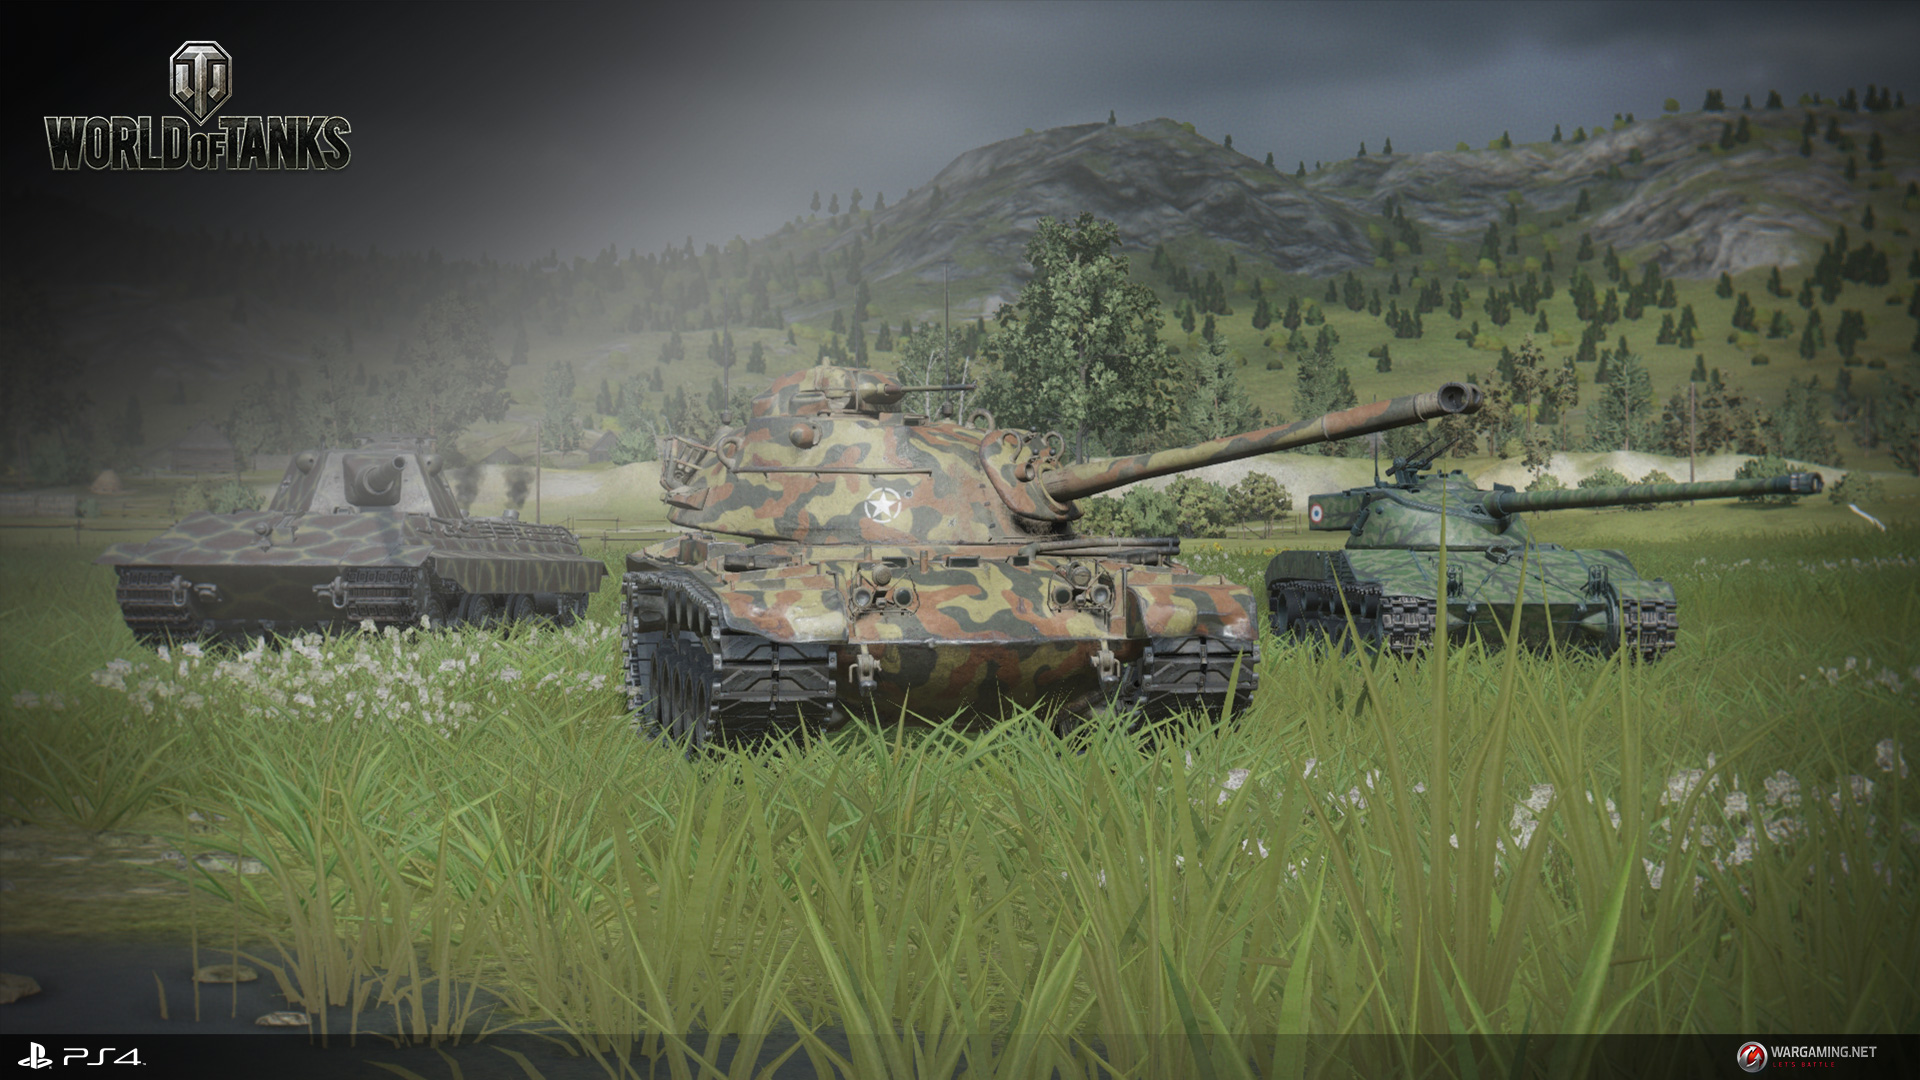 World of tanks ps4 release date